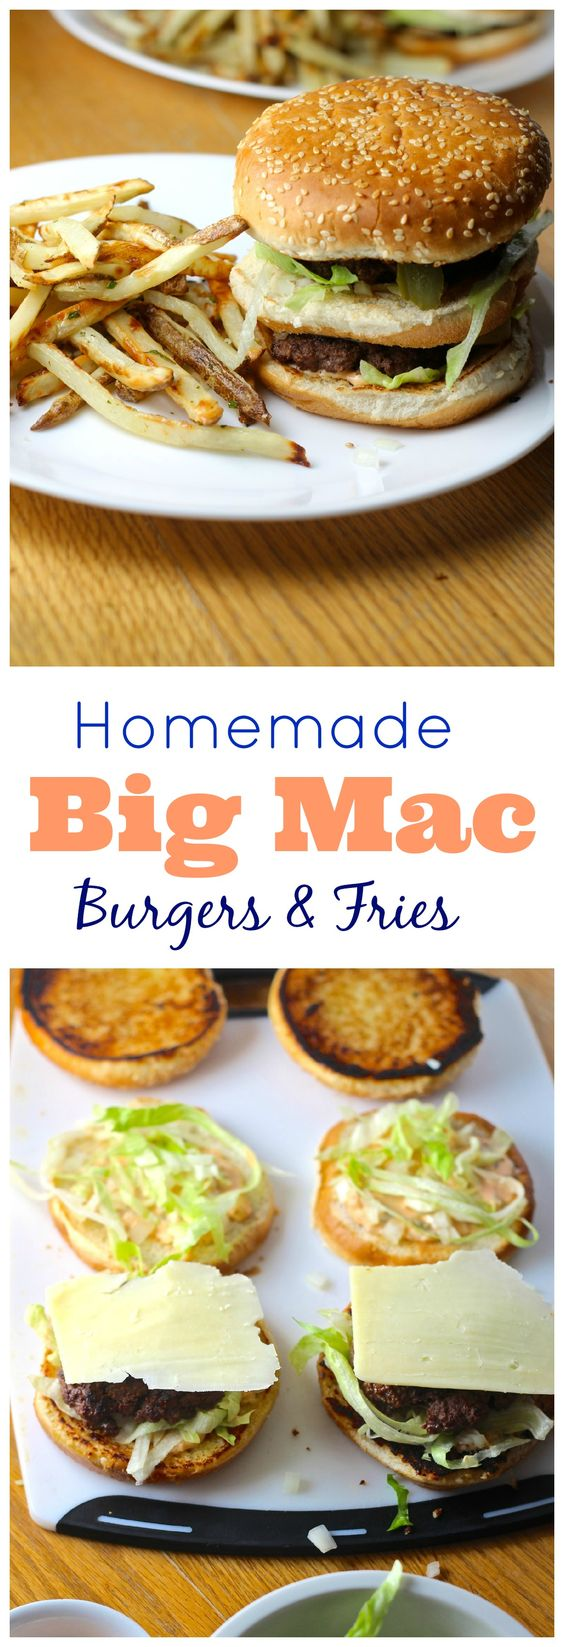 Homemade Big Mac Burgers with special sauce and frites!